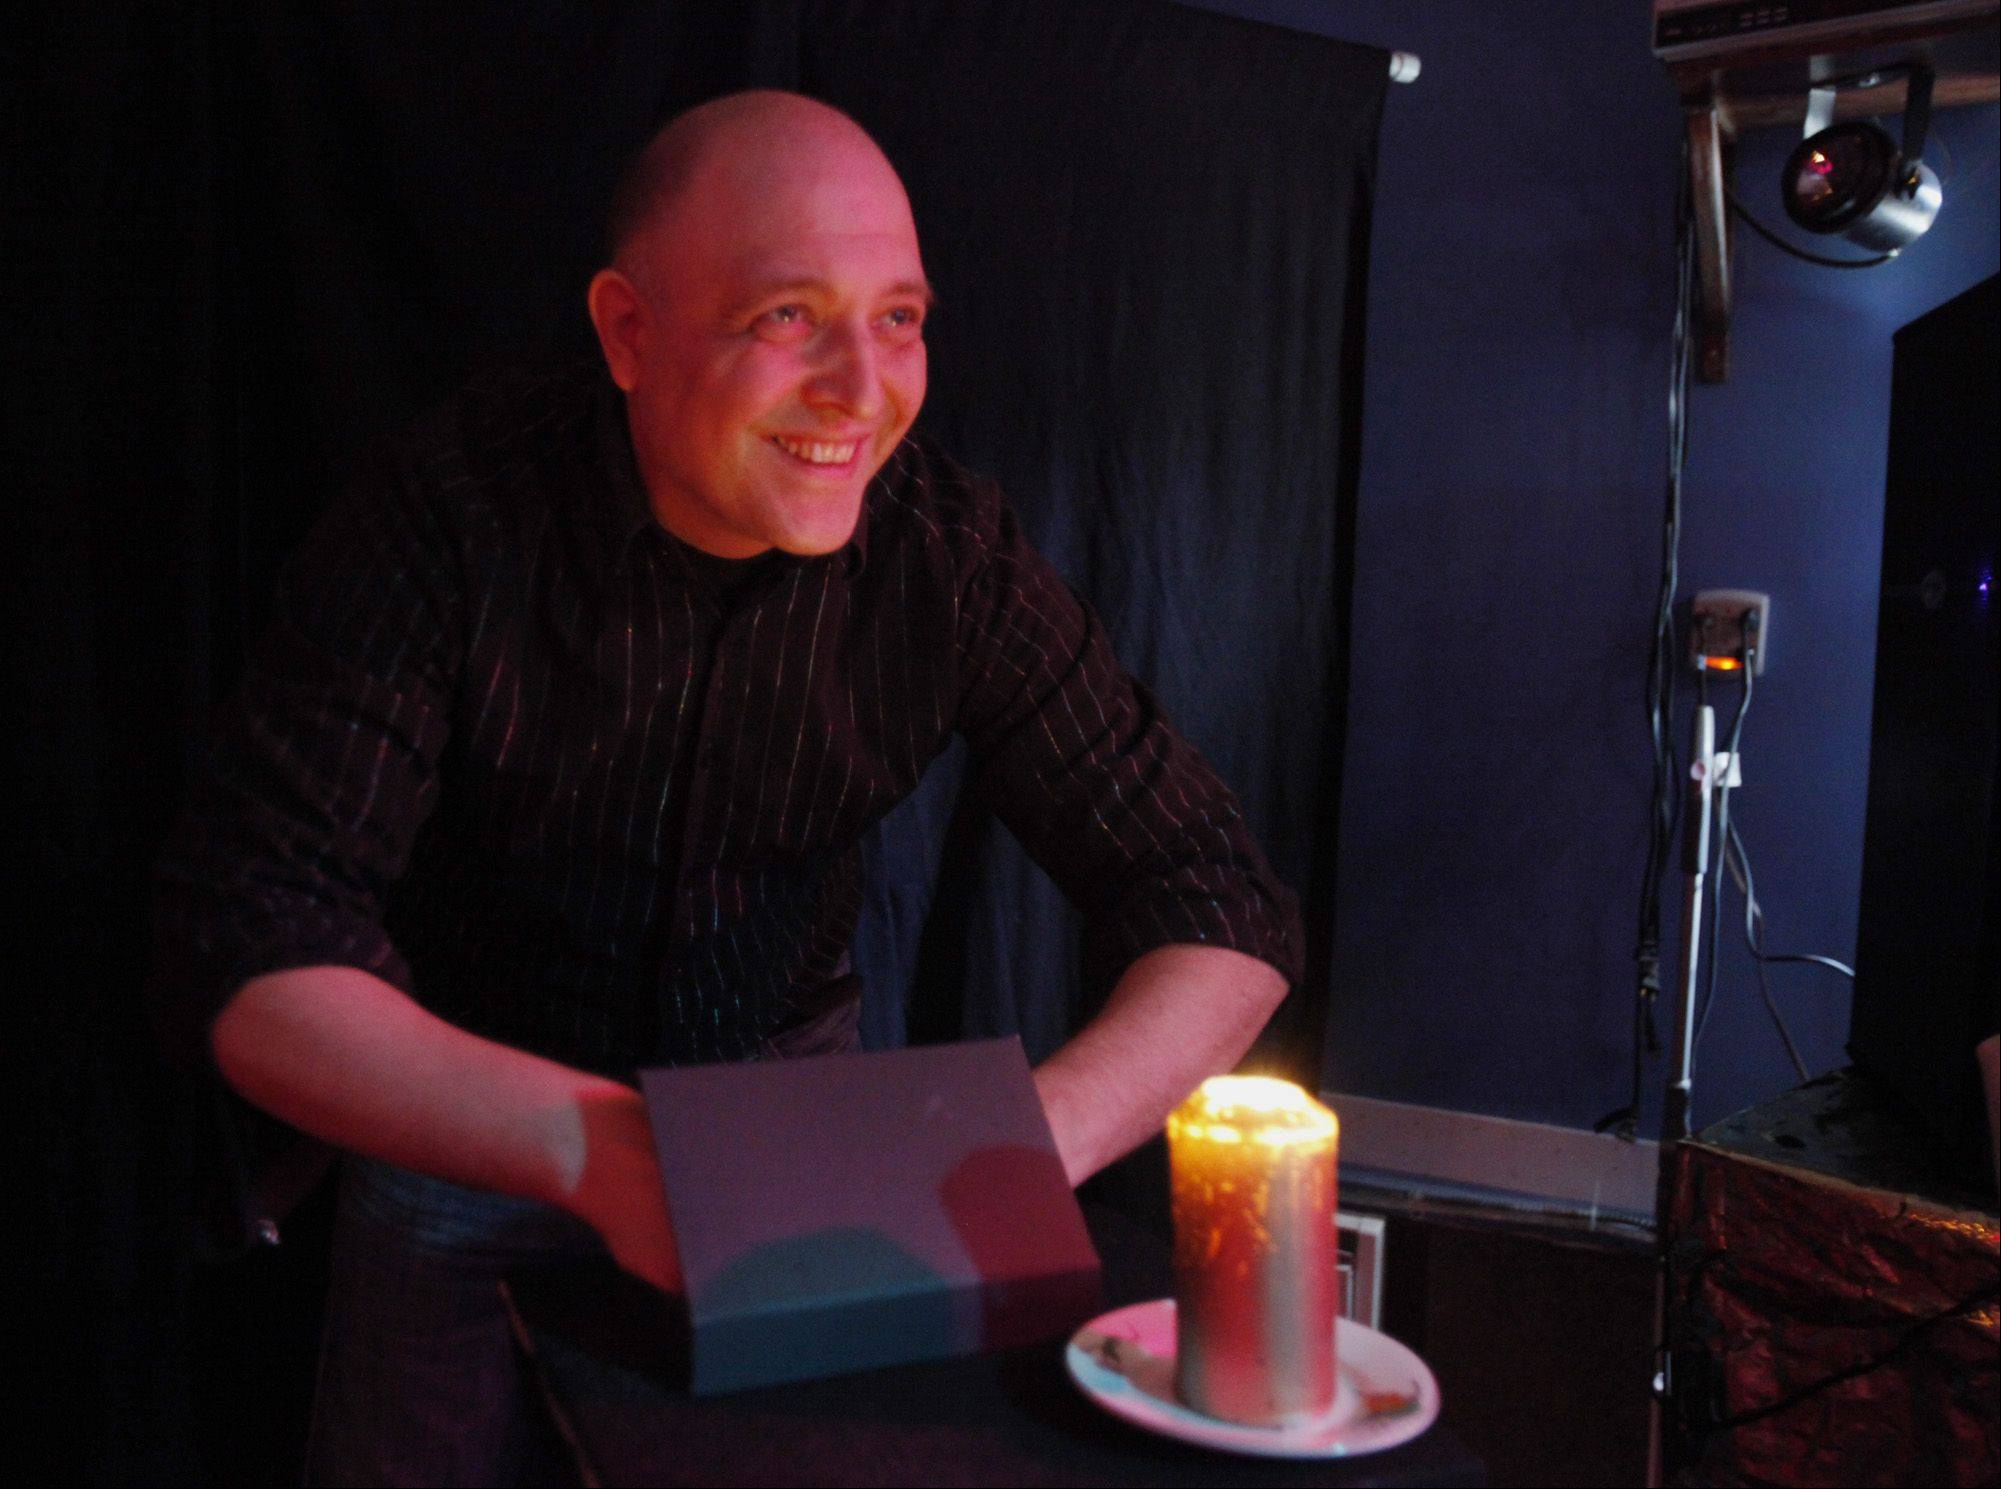 Magician Mark Presley Hawkins grins after showing off his 'Butterfly in a Box' trick, which he hopes to unveil to audiences later this year.